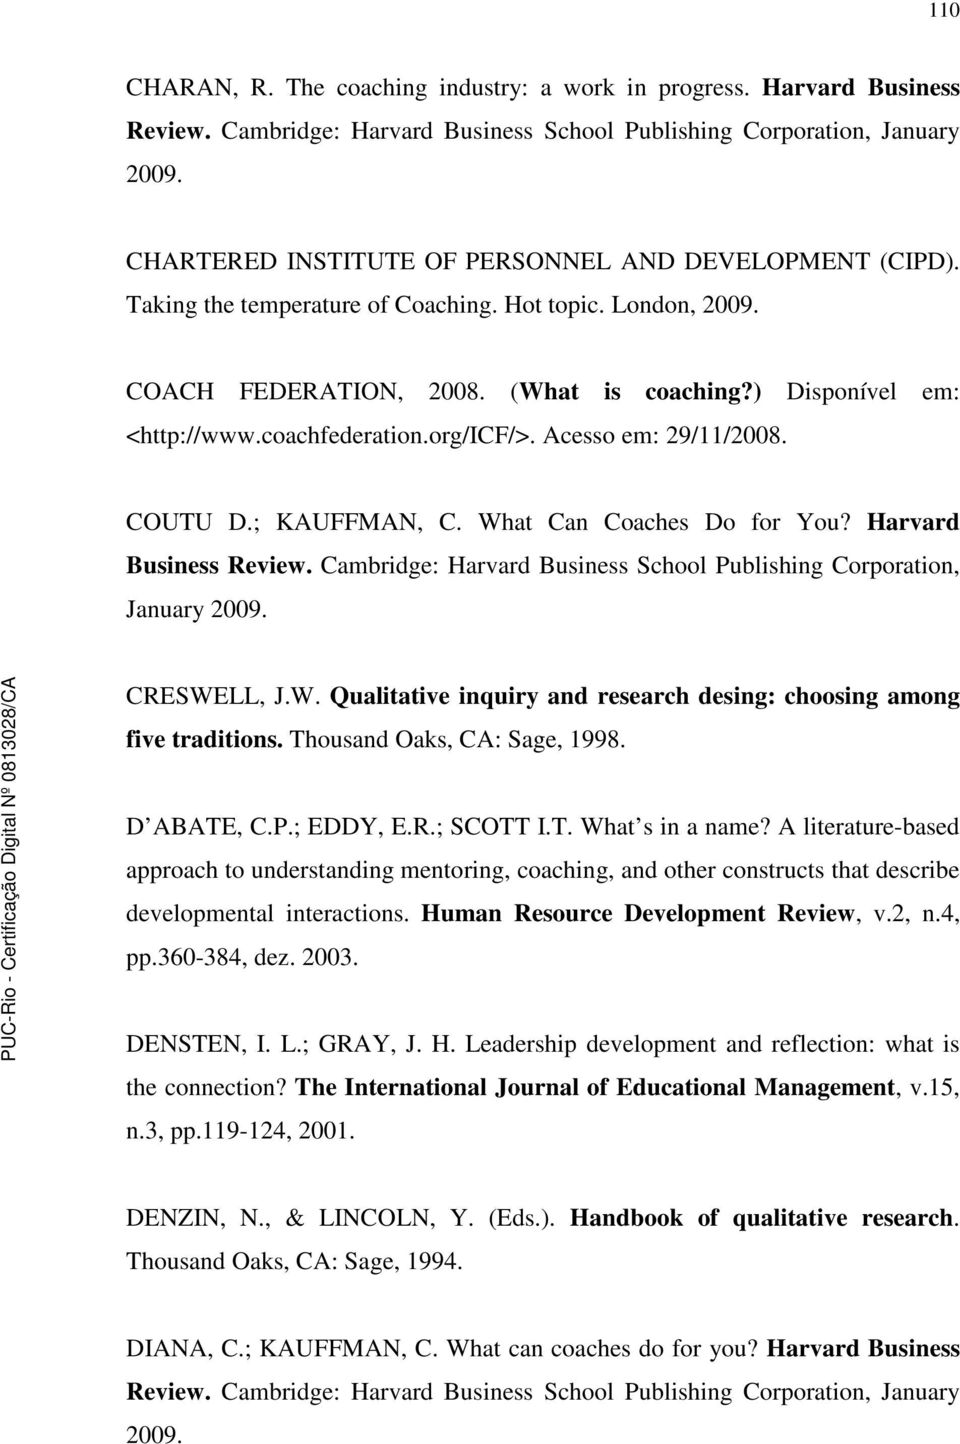 coachfederation.org/icf/>. Acesso em: 29/11/2008. COUTU D.; KAUFFMAN, C. What Can Coaches Do for You? Harvard Business Review. Cambridge: Harvard Business School Publishing Corporation, January 2009.